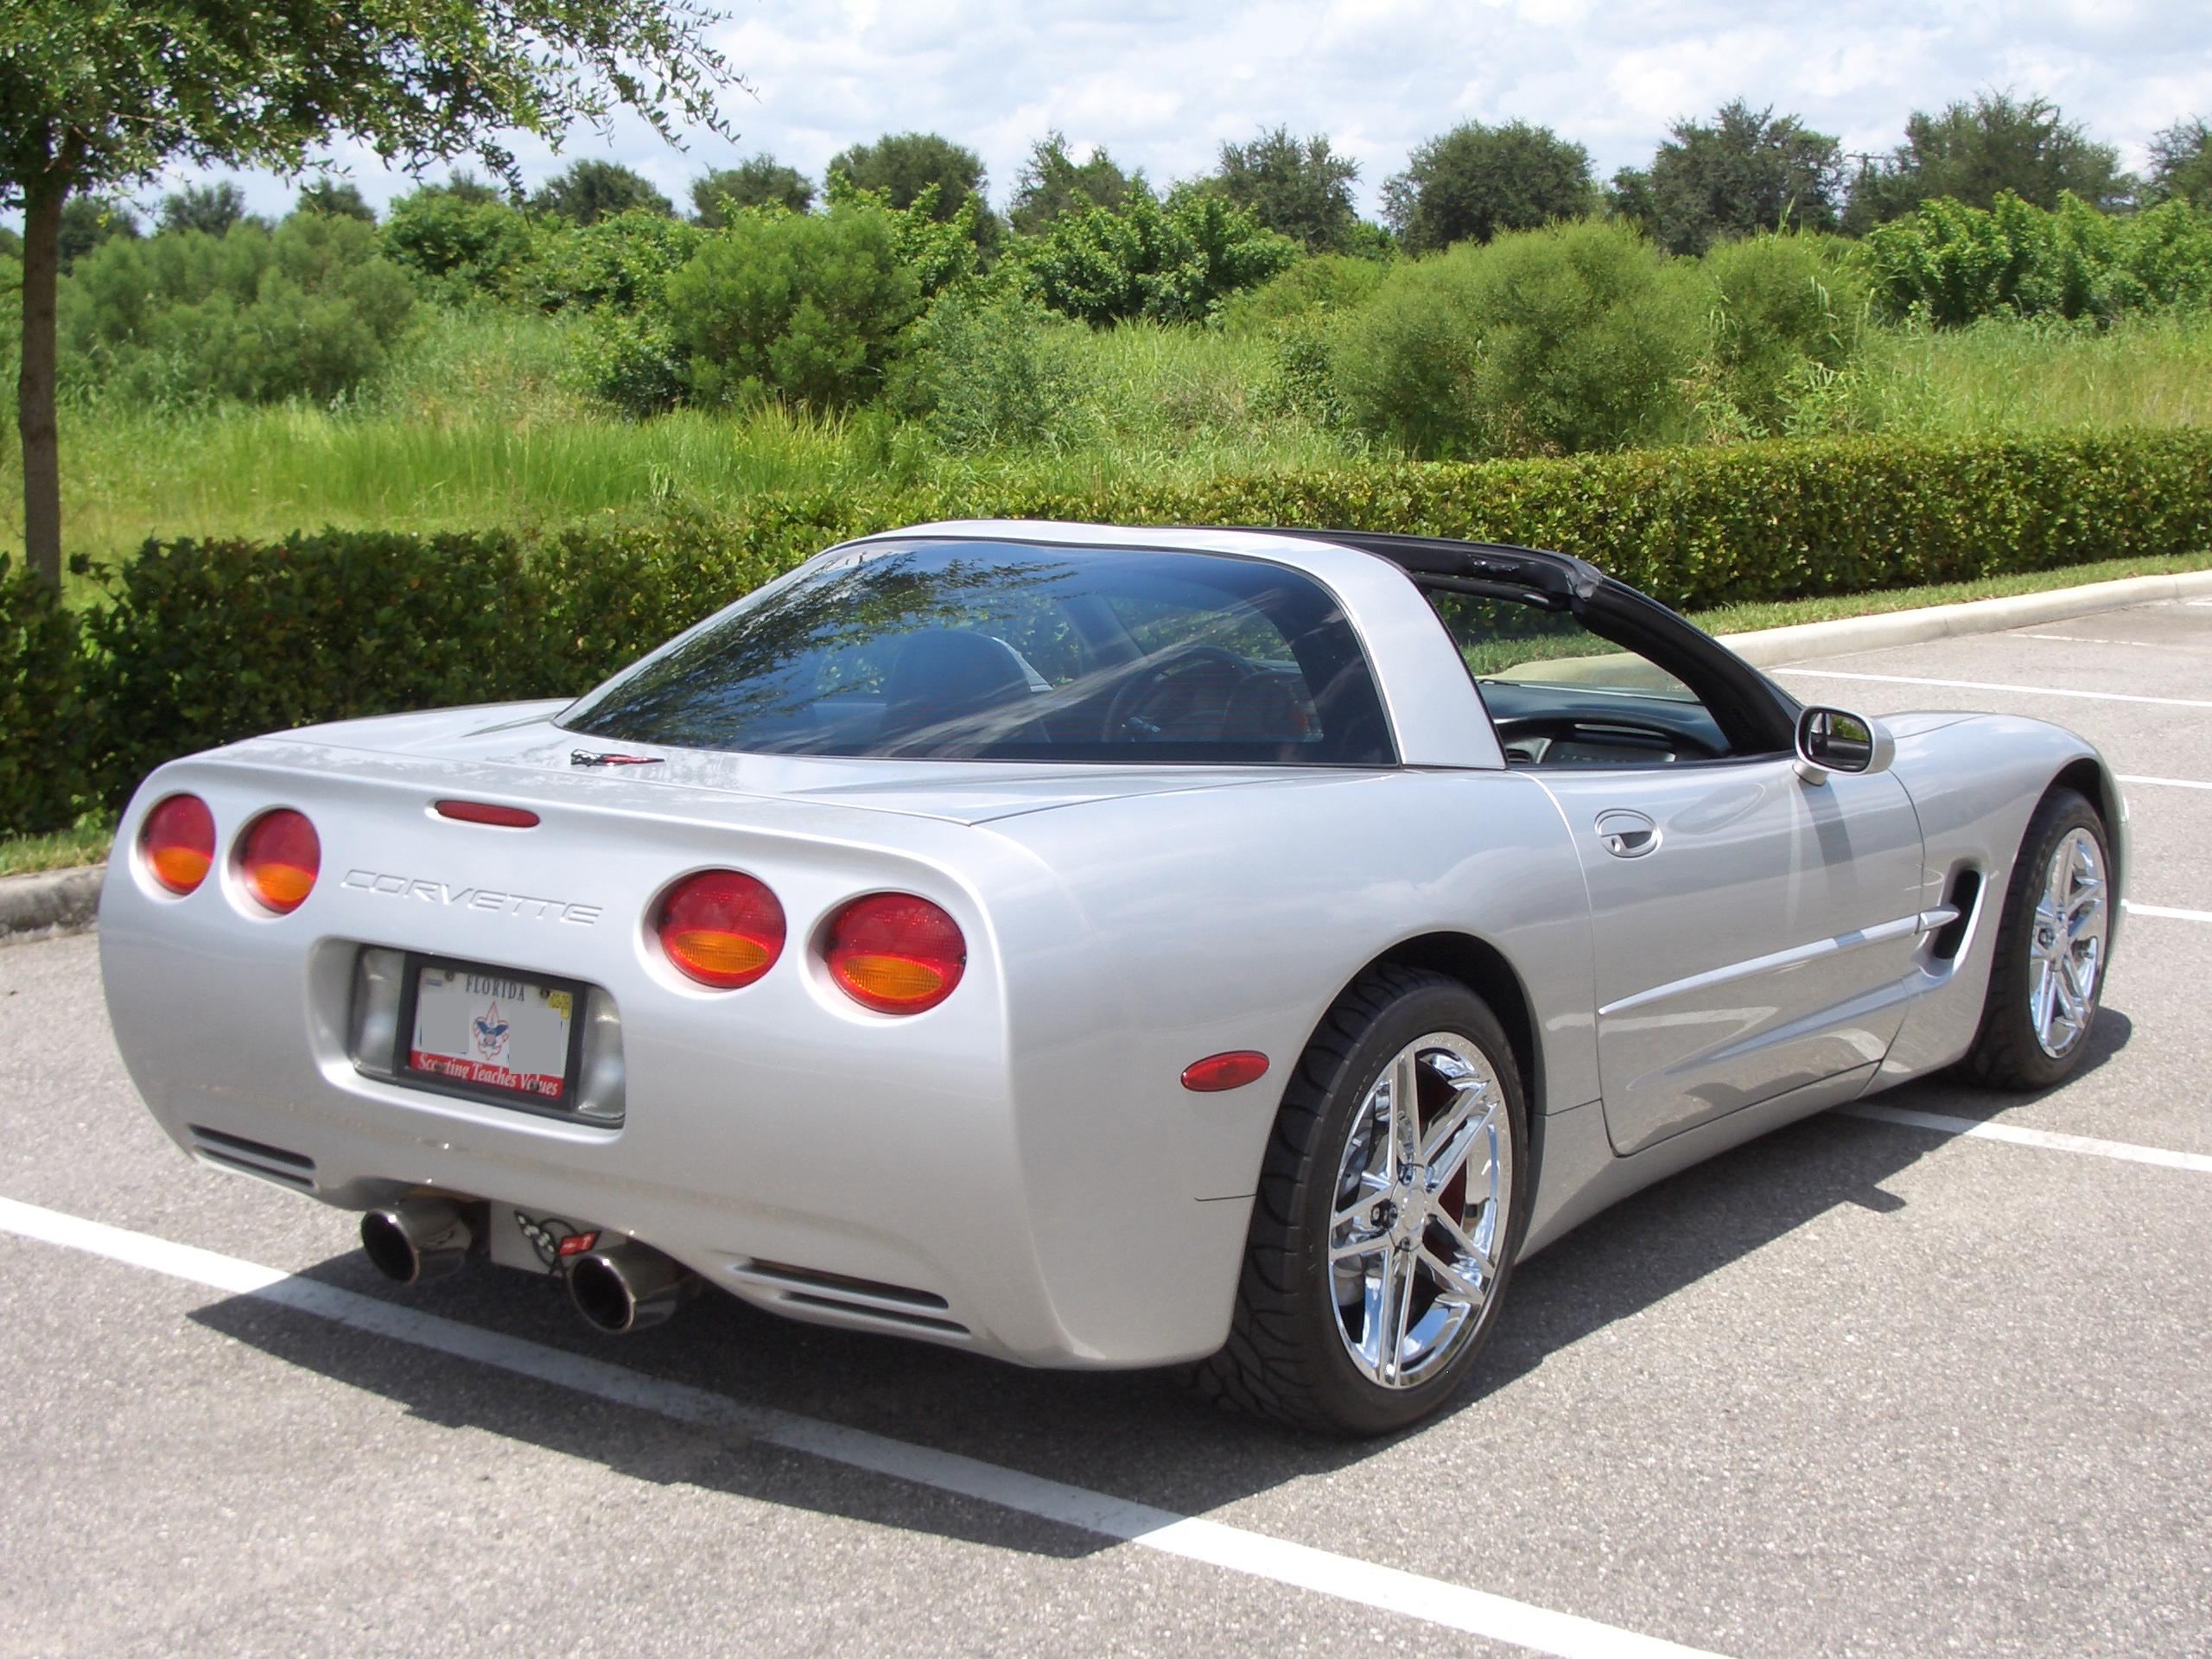 Cba Bc F F D A on 1999 Corvette Ls1 Engine Specs